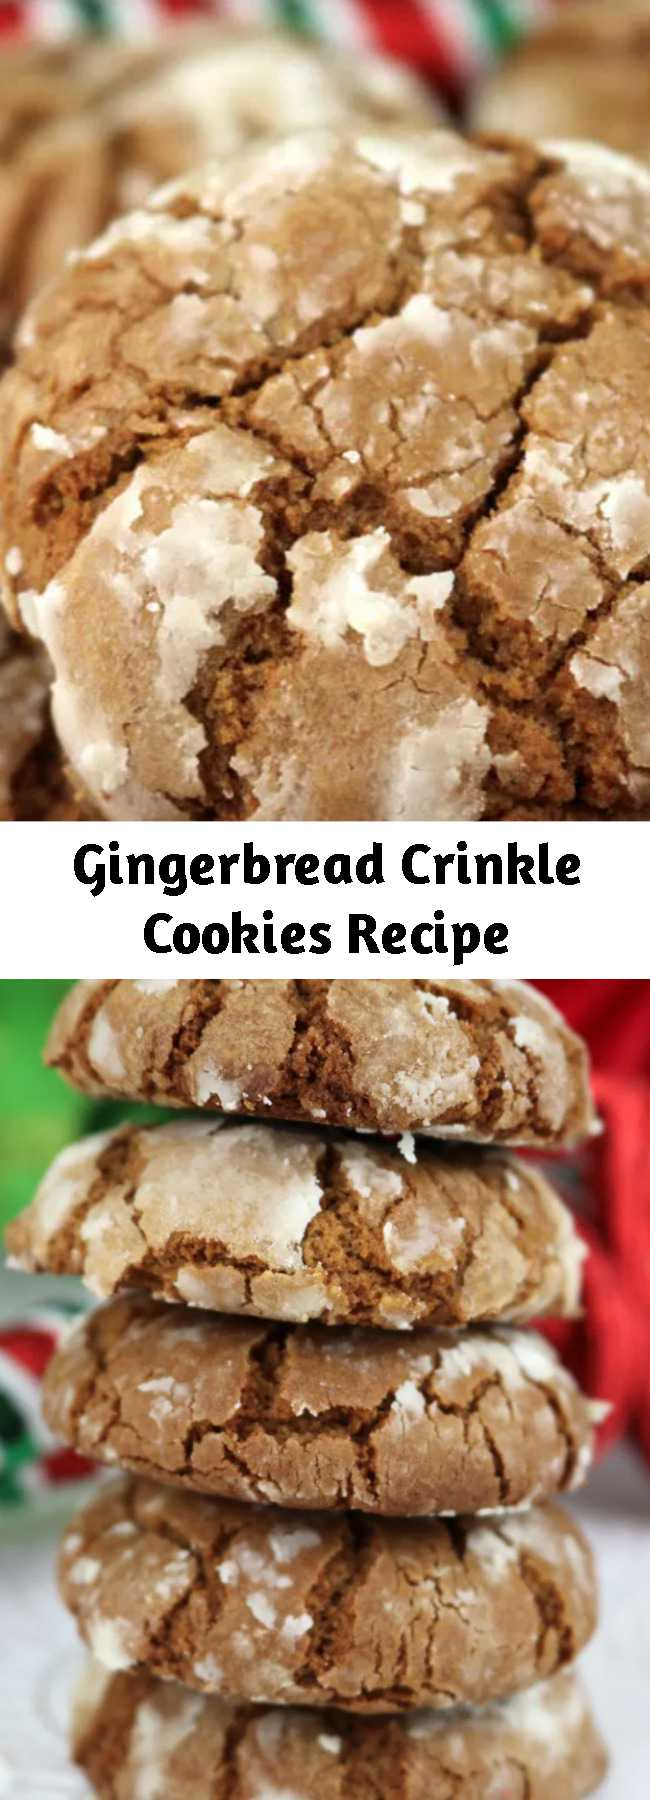 Gingerbread Crinkle Cookies Recipe - Gingerbread Crinkle Cookies - light, fluffy and spicy on the inside and sweet and crunchy on the outside is a delicious Christmas dessert. So easy to make, so delicious, so Christmas-y! You're definitely going to want to add this recipe to your Christmas desserts baking list! #ChristmasDesserts #EasyChristmasDessert #FunChristmasDessert